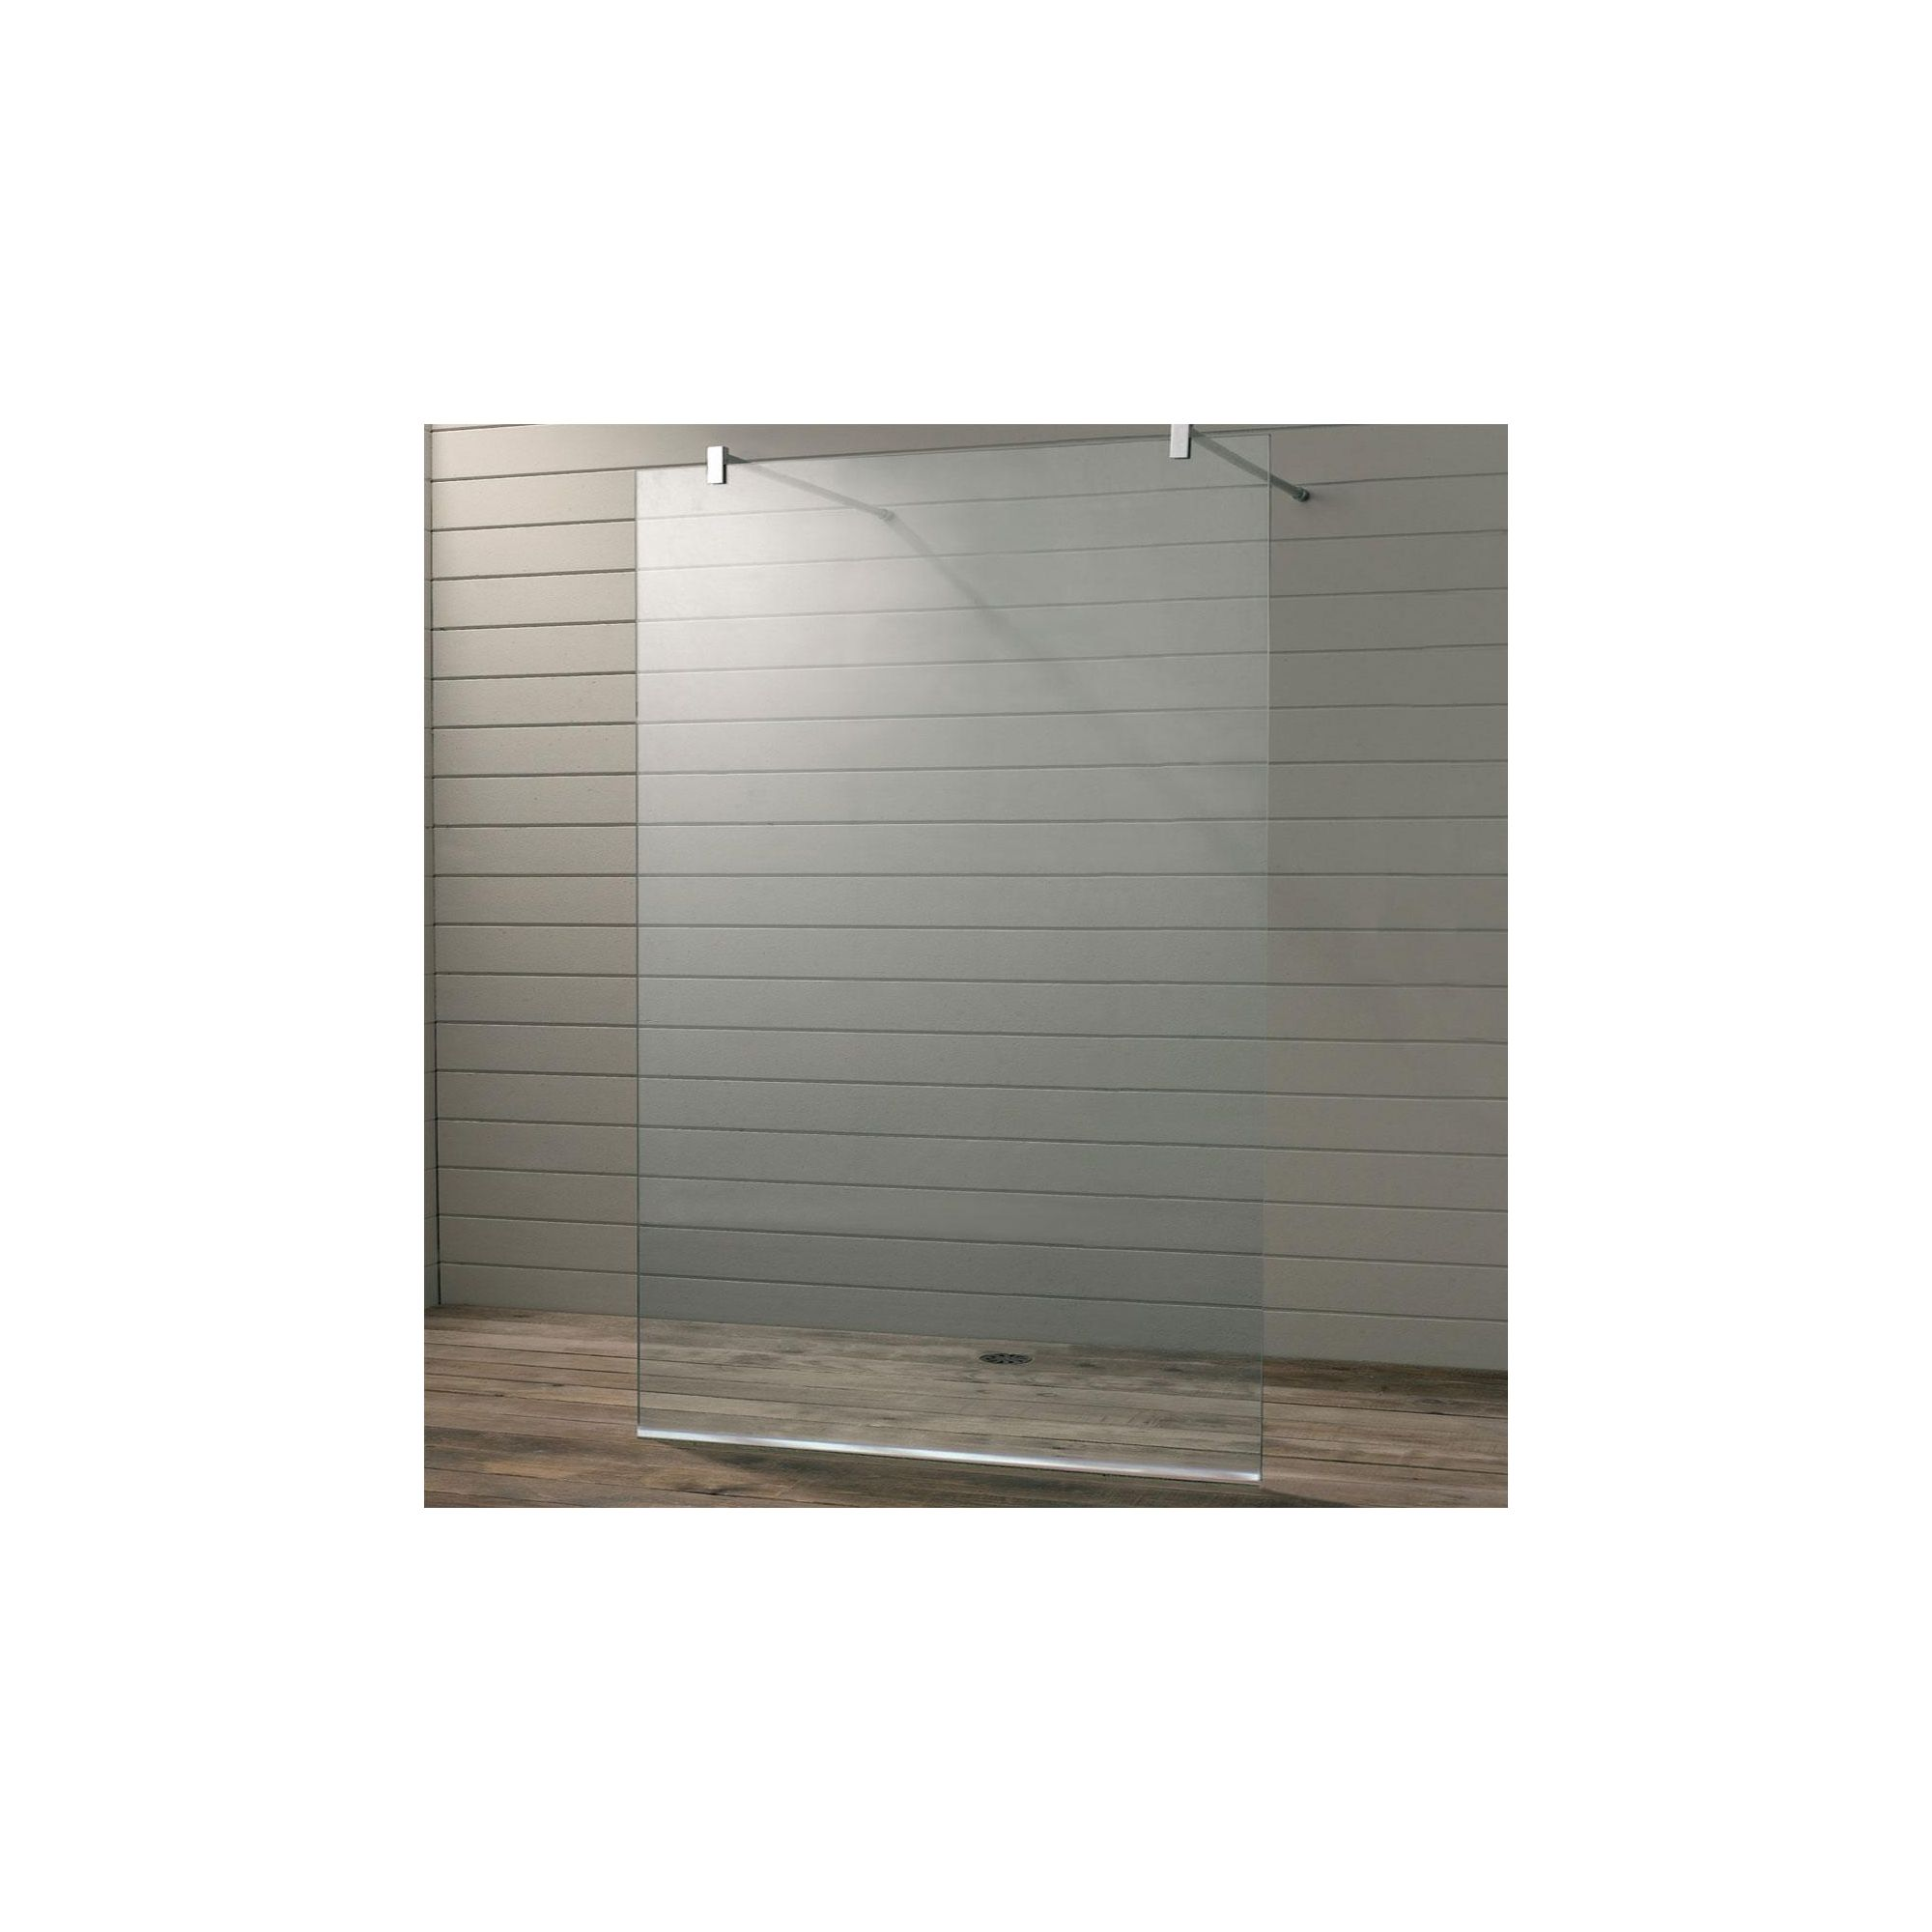 Duchy Premium Wet Room Glass Shower Panel, 1000mm x 900mm, 10mm Glass, Low Profile Tray at Tesco Direct